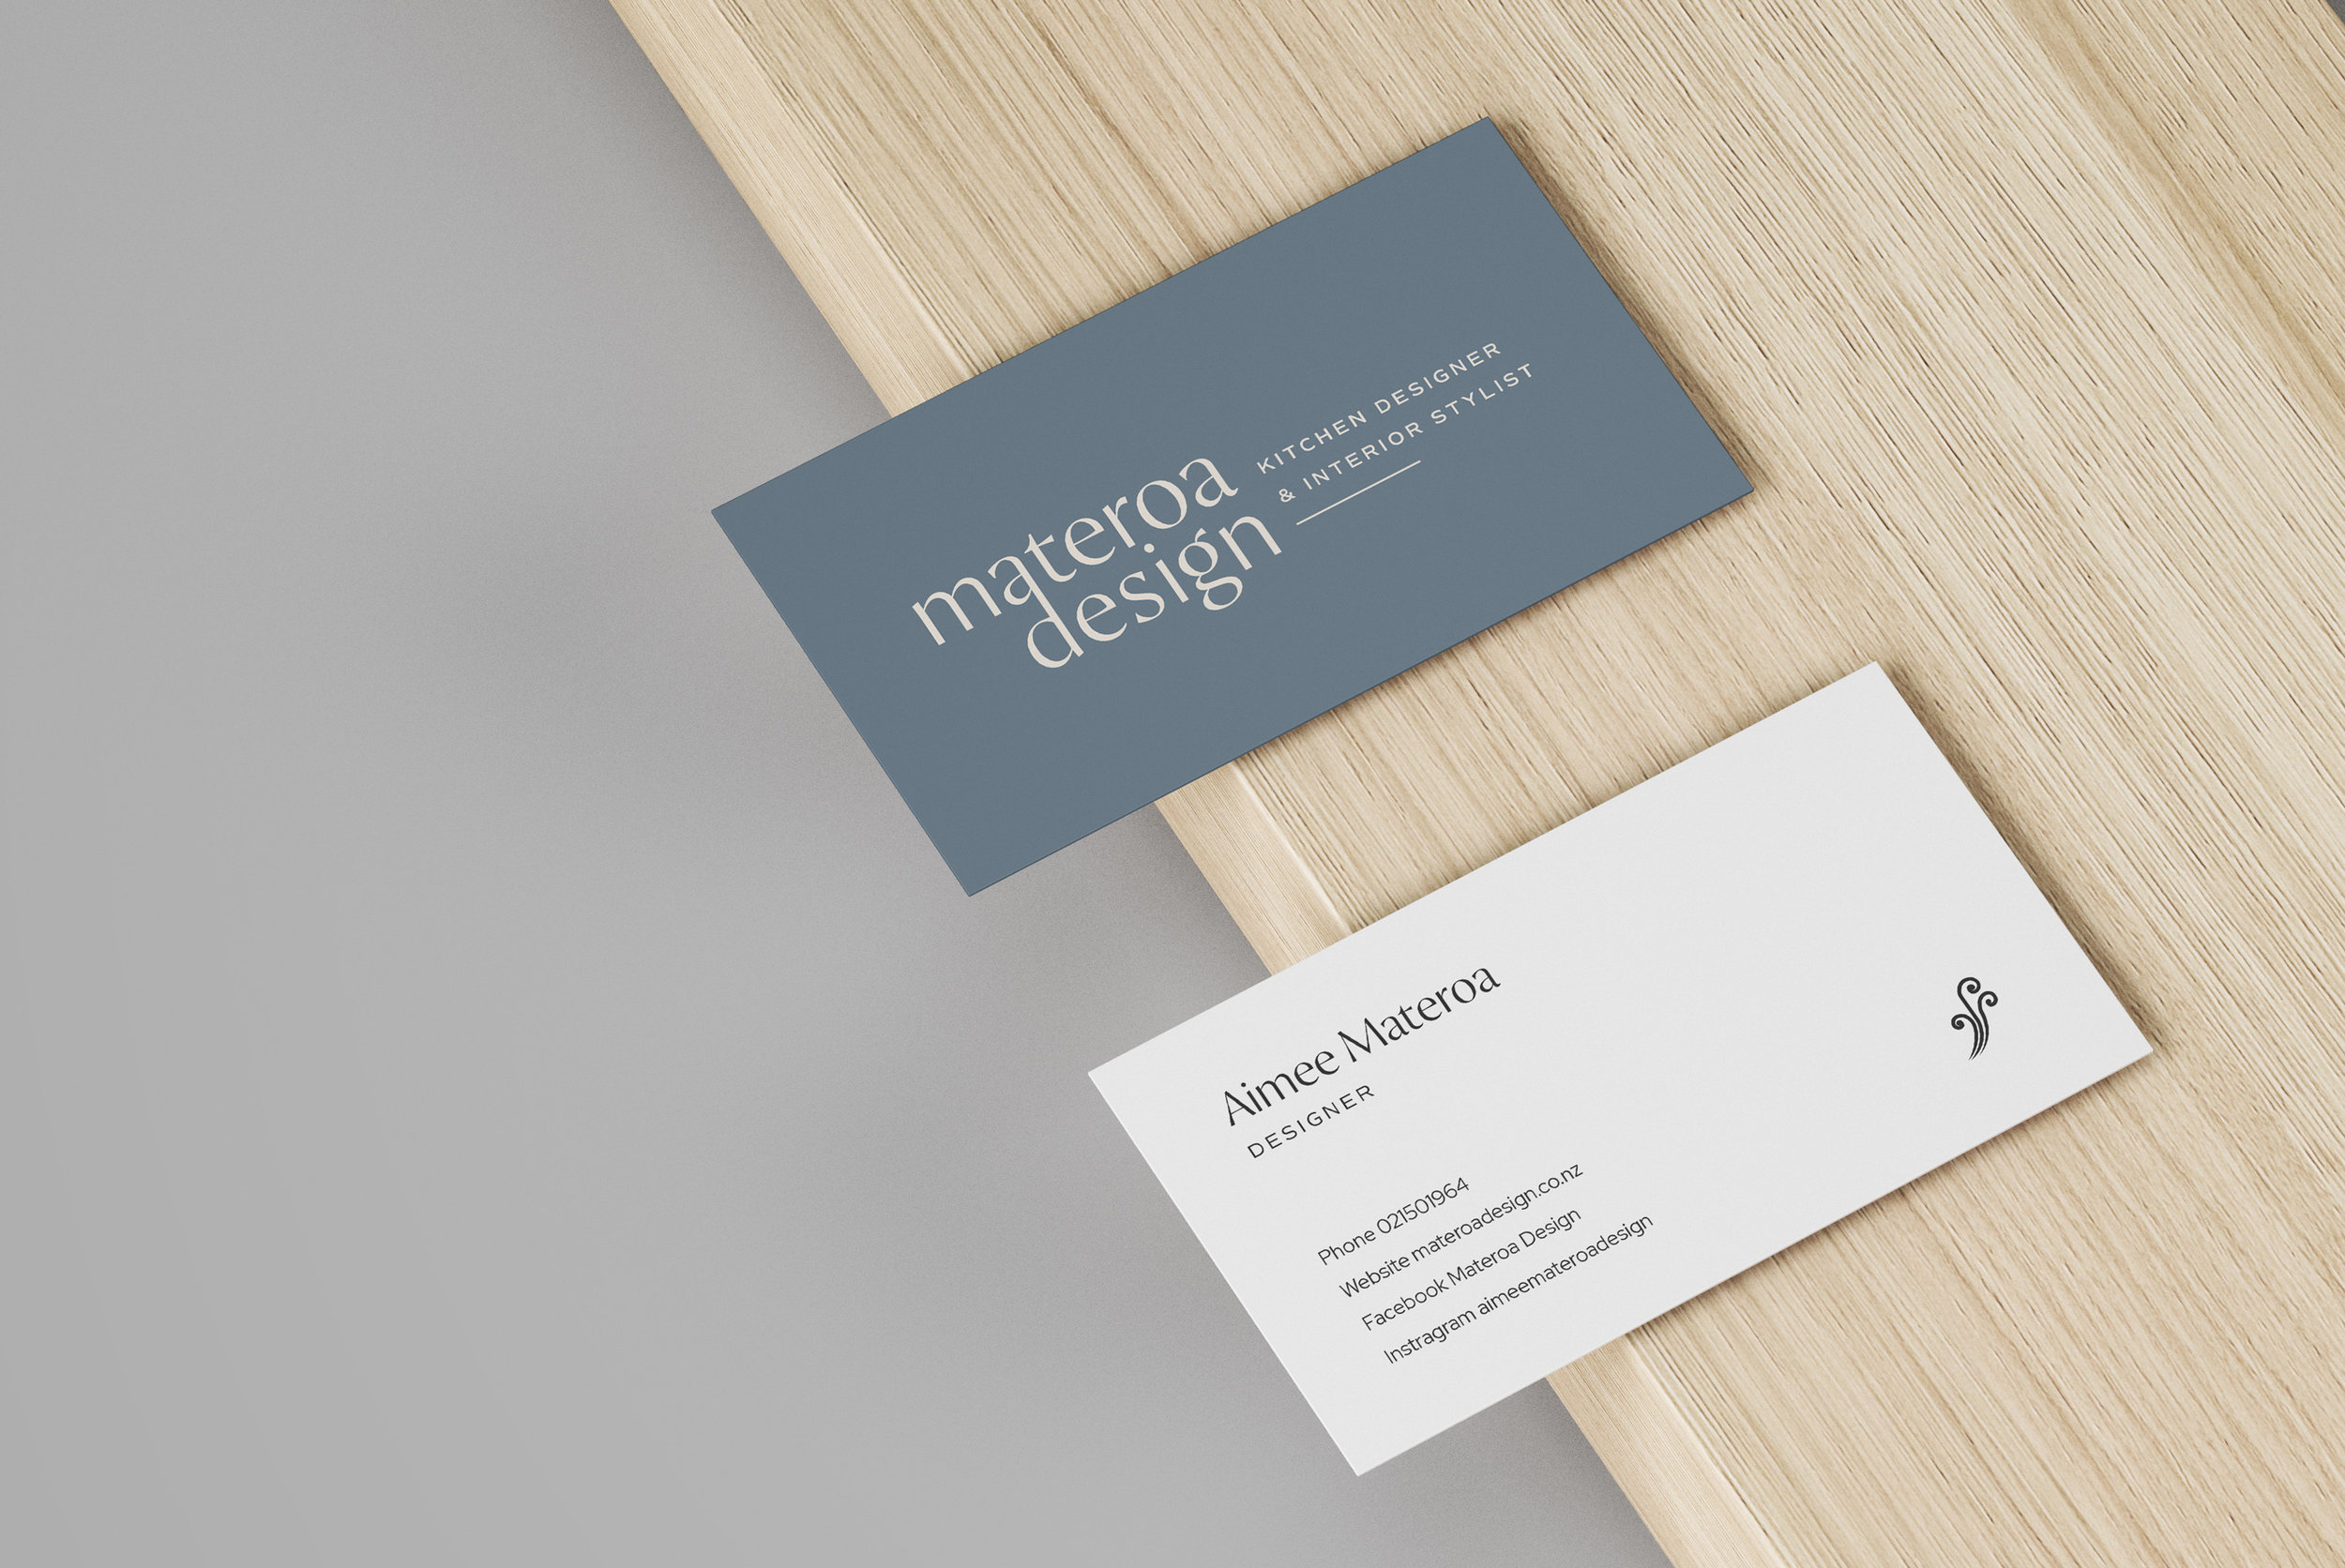 Materoa Design business cards - by January Made Design